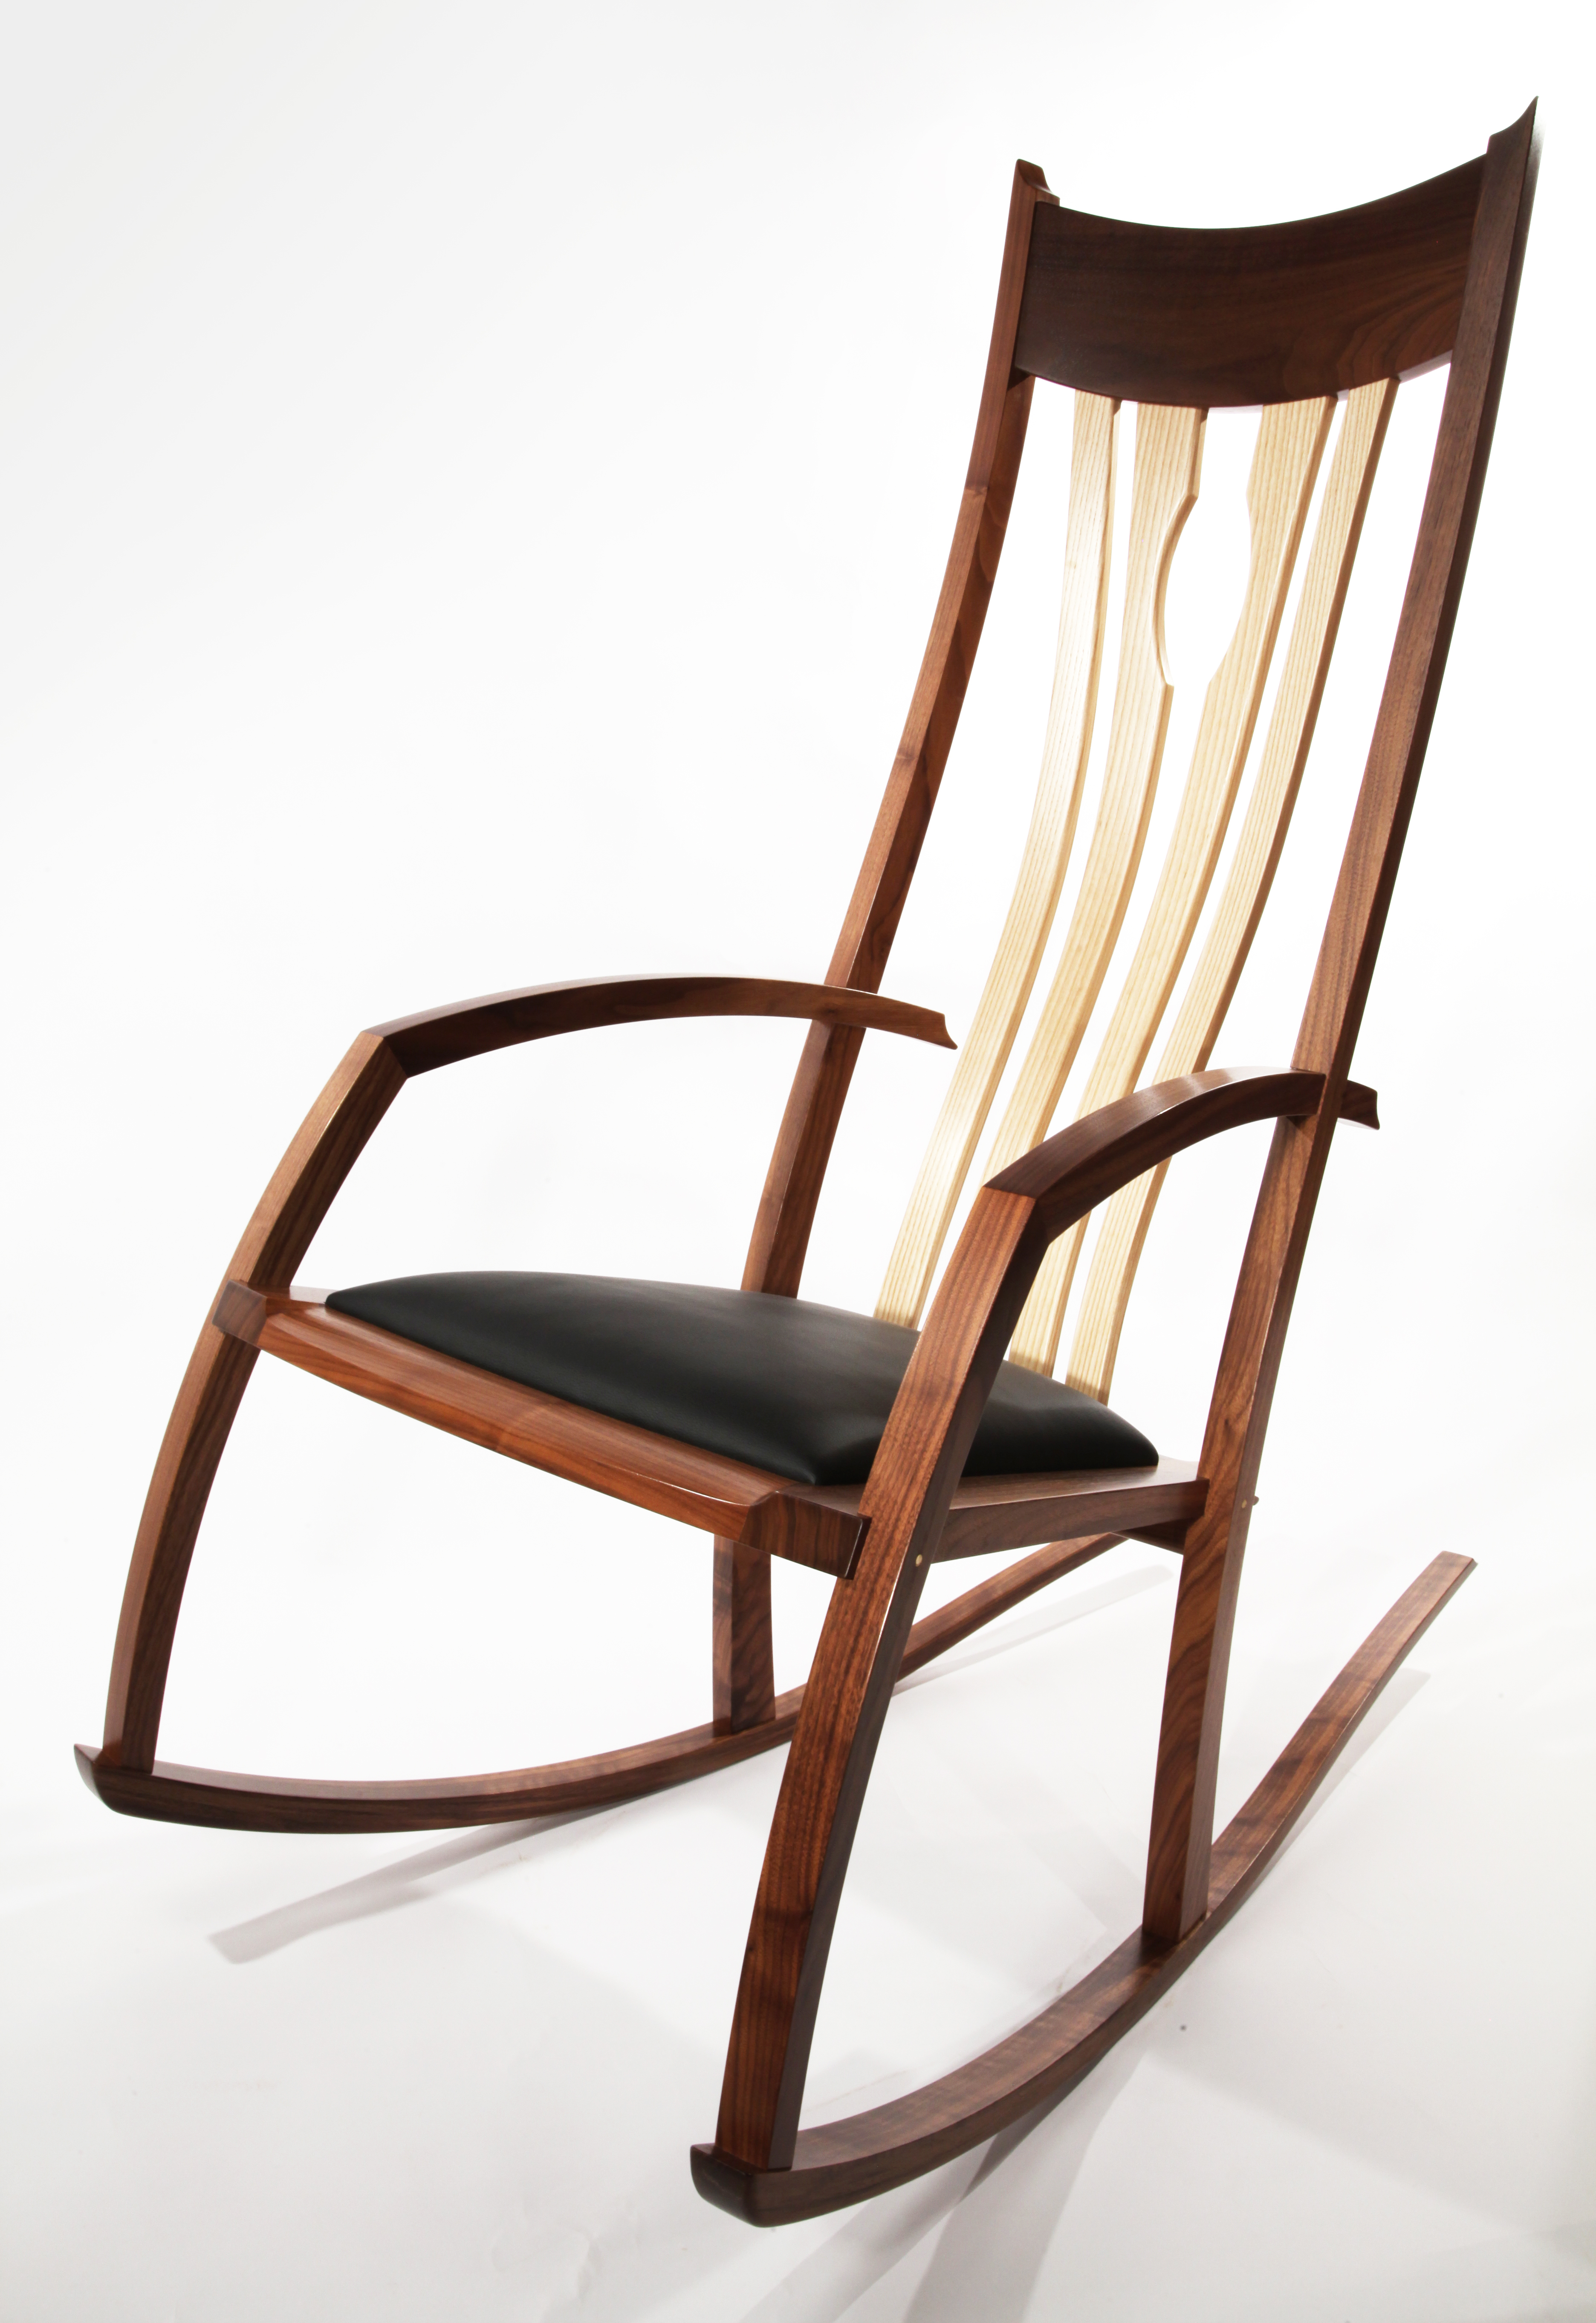 The Morley Rocker – Walnut – Philip Morley Furniture With Regard To Dark Walnut Rocking Chairs (View 20 of 20)